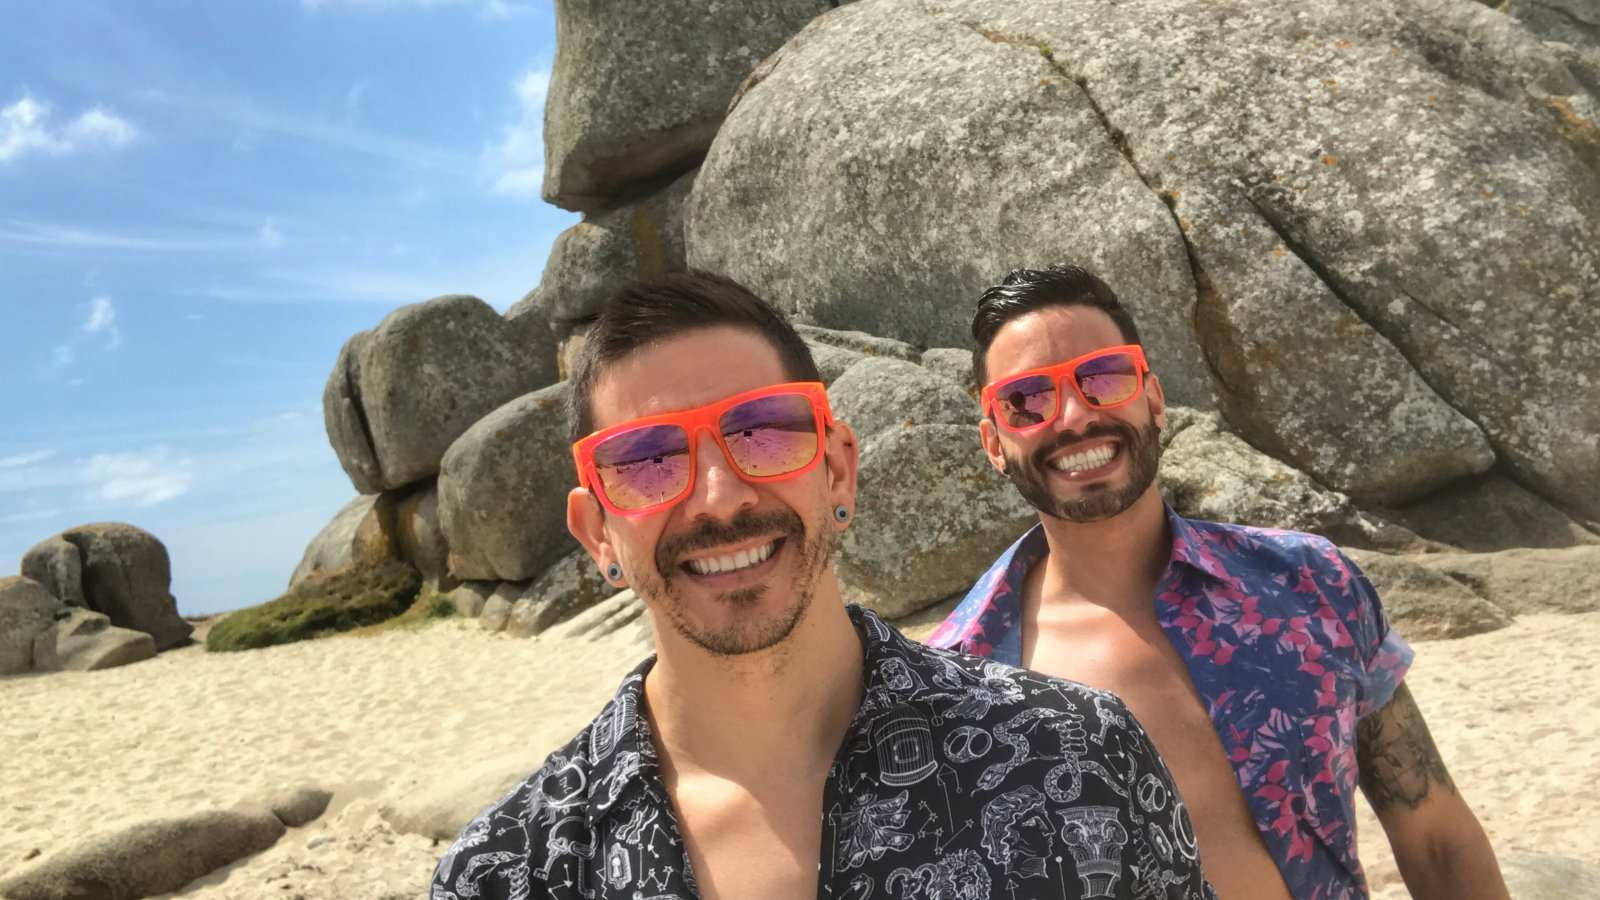 Auston of Two Bad Tourists is one of our good friends and he shared his coming out story with us here